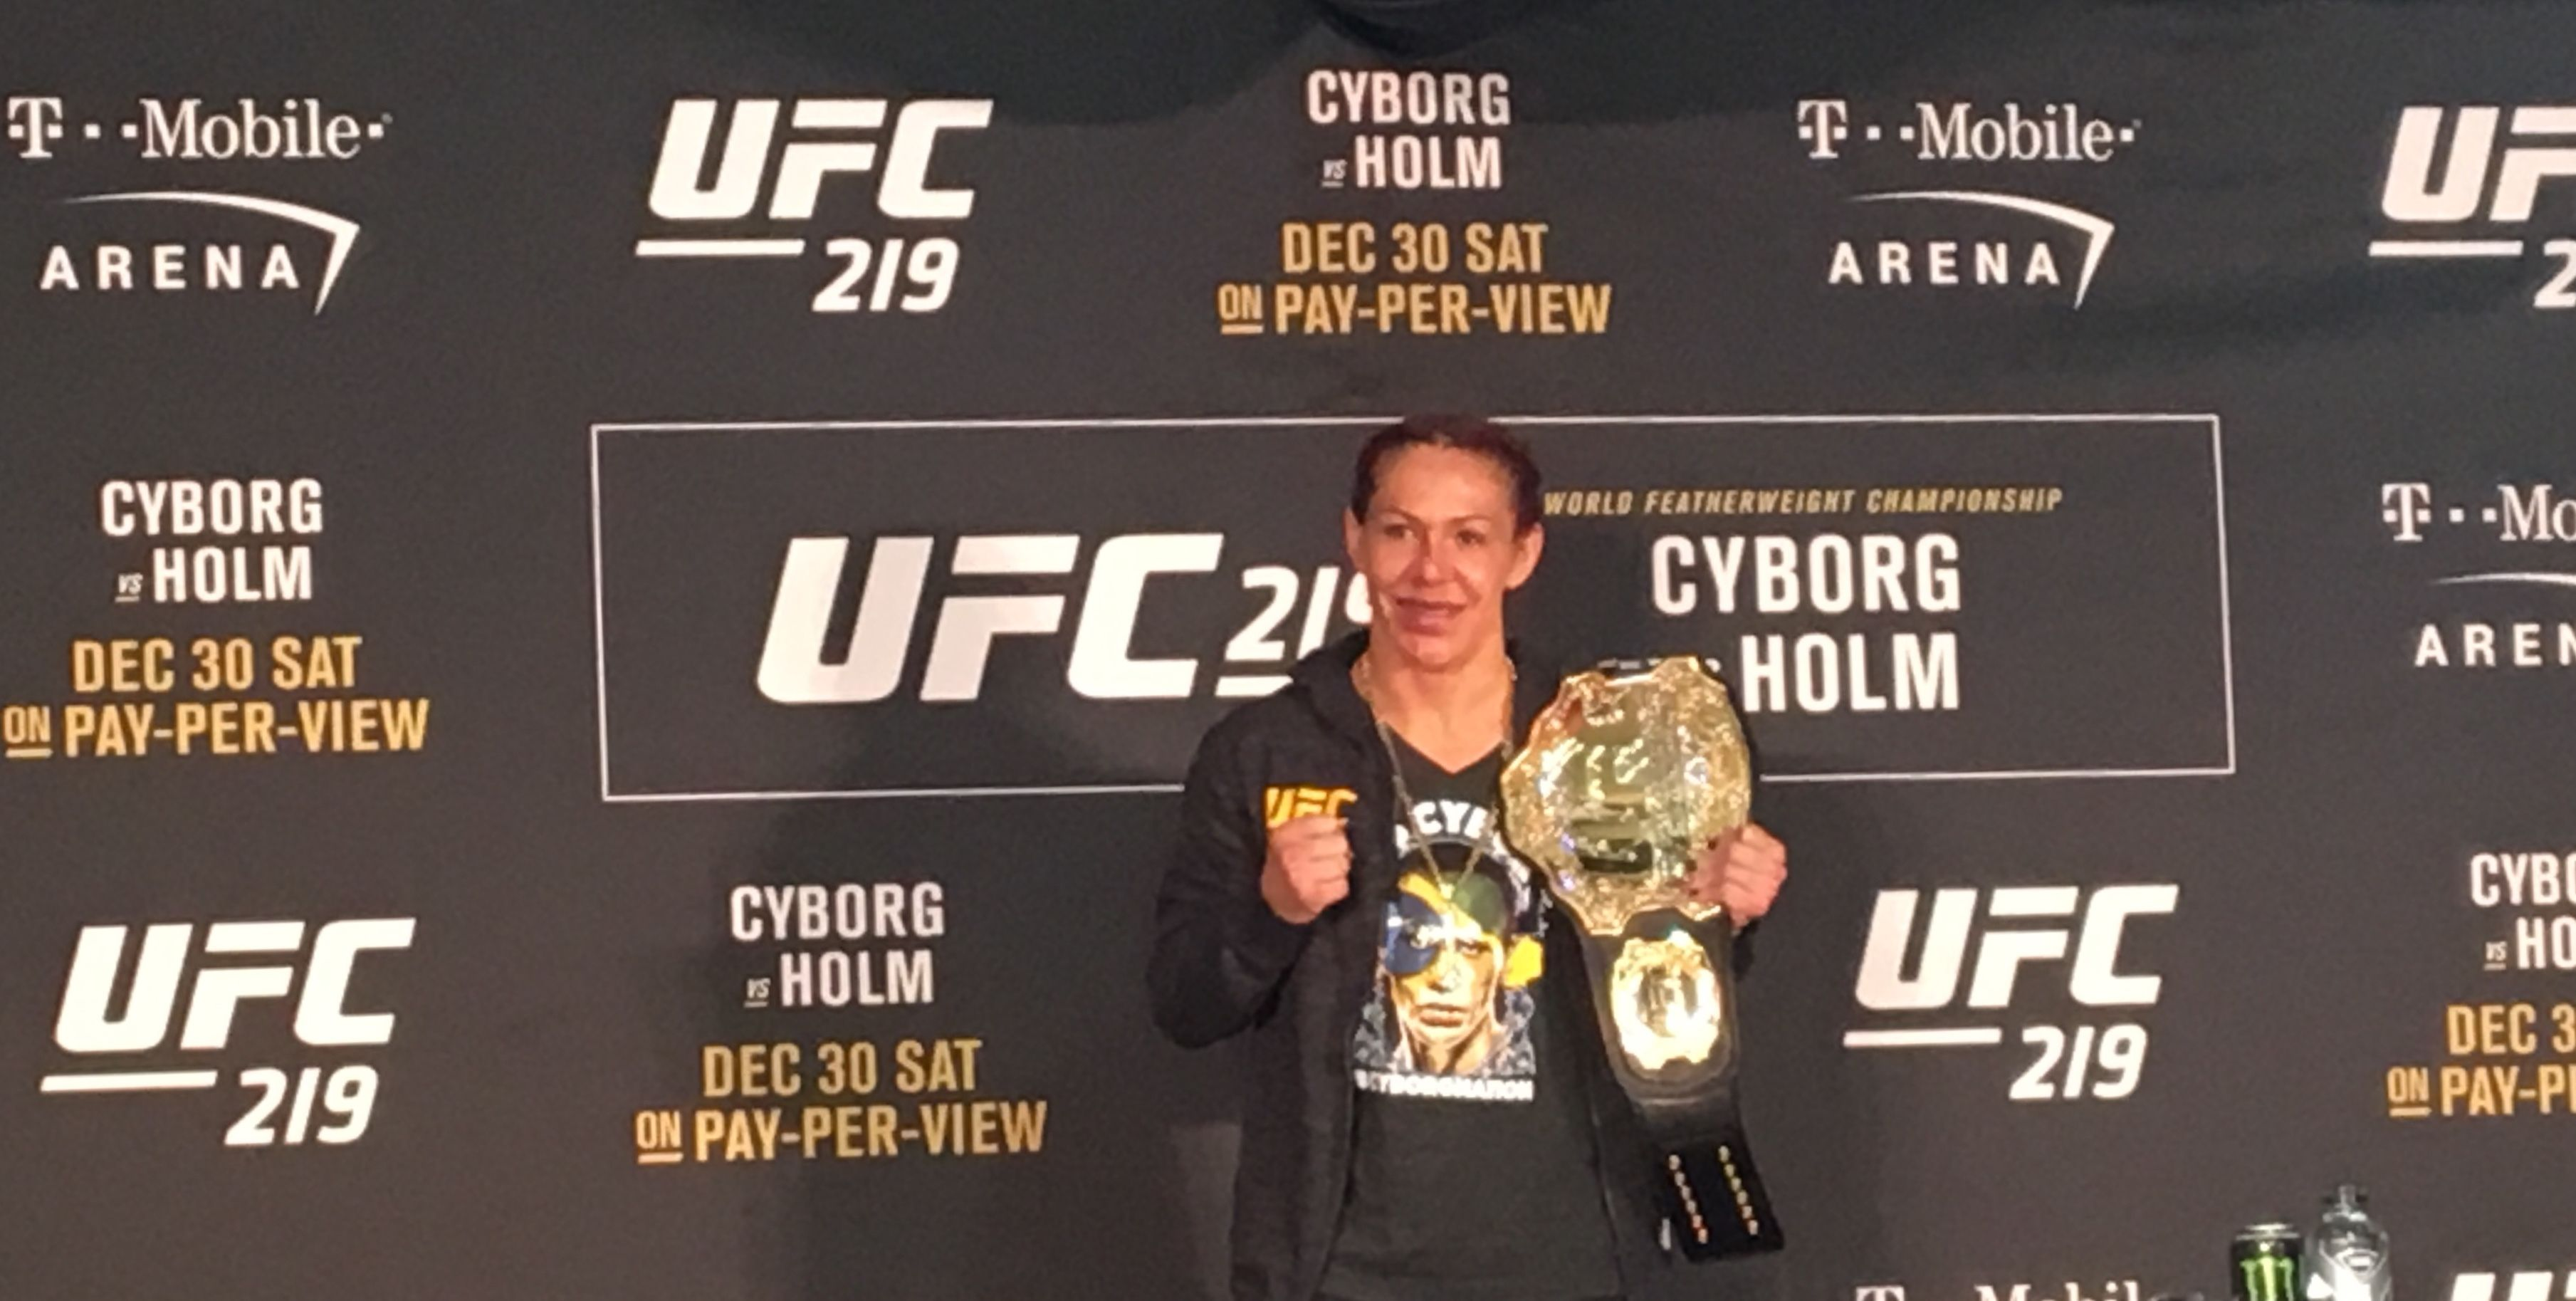 Cyborg Ready For Boxing Match if No UFC Opponent is Ready